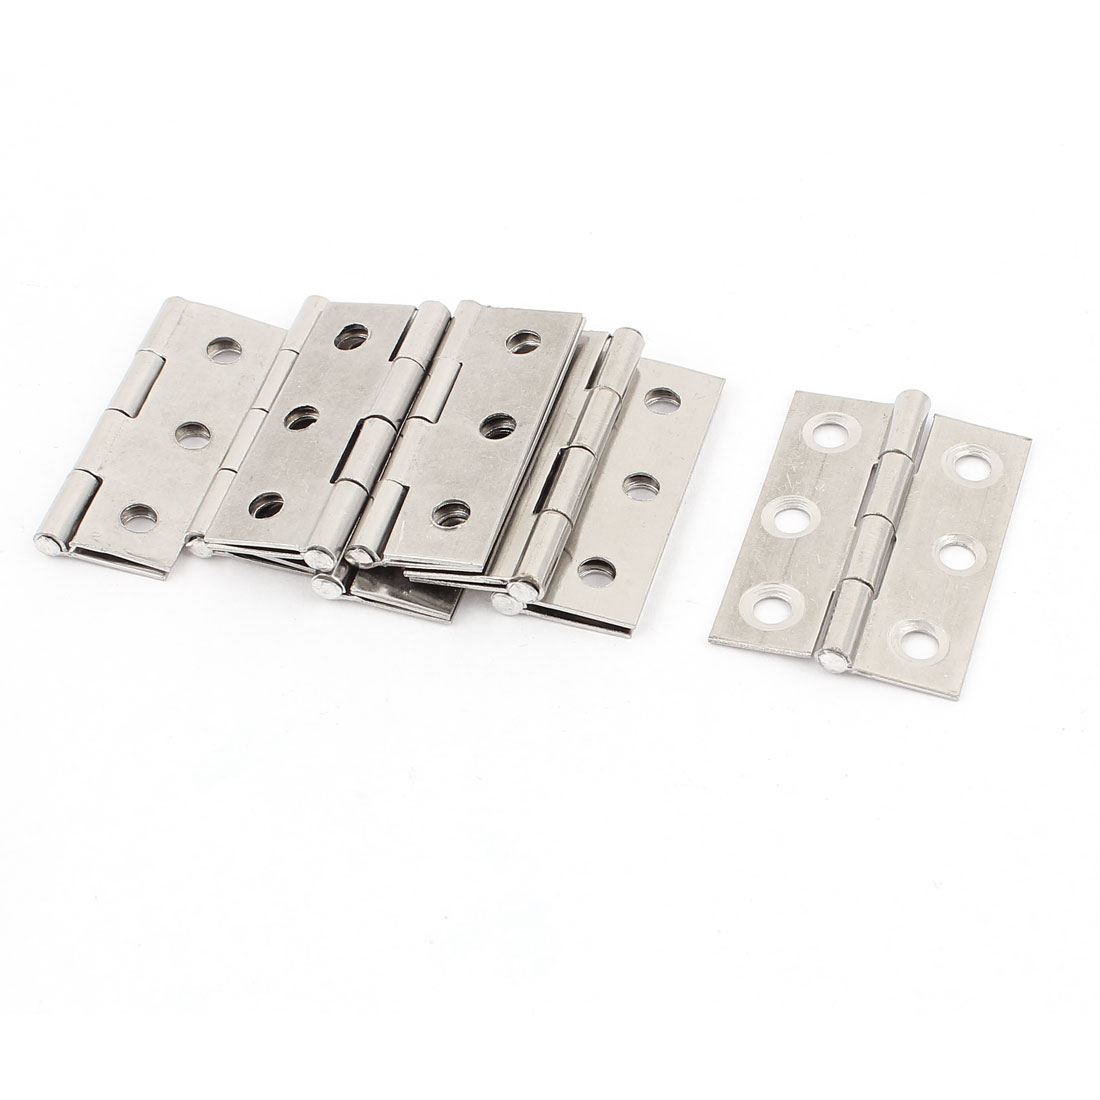 "8 Pcs Stainless Steel 4.5mm Mounting Hole 1.7"" Length Cabinet Door Hinge"